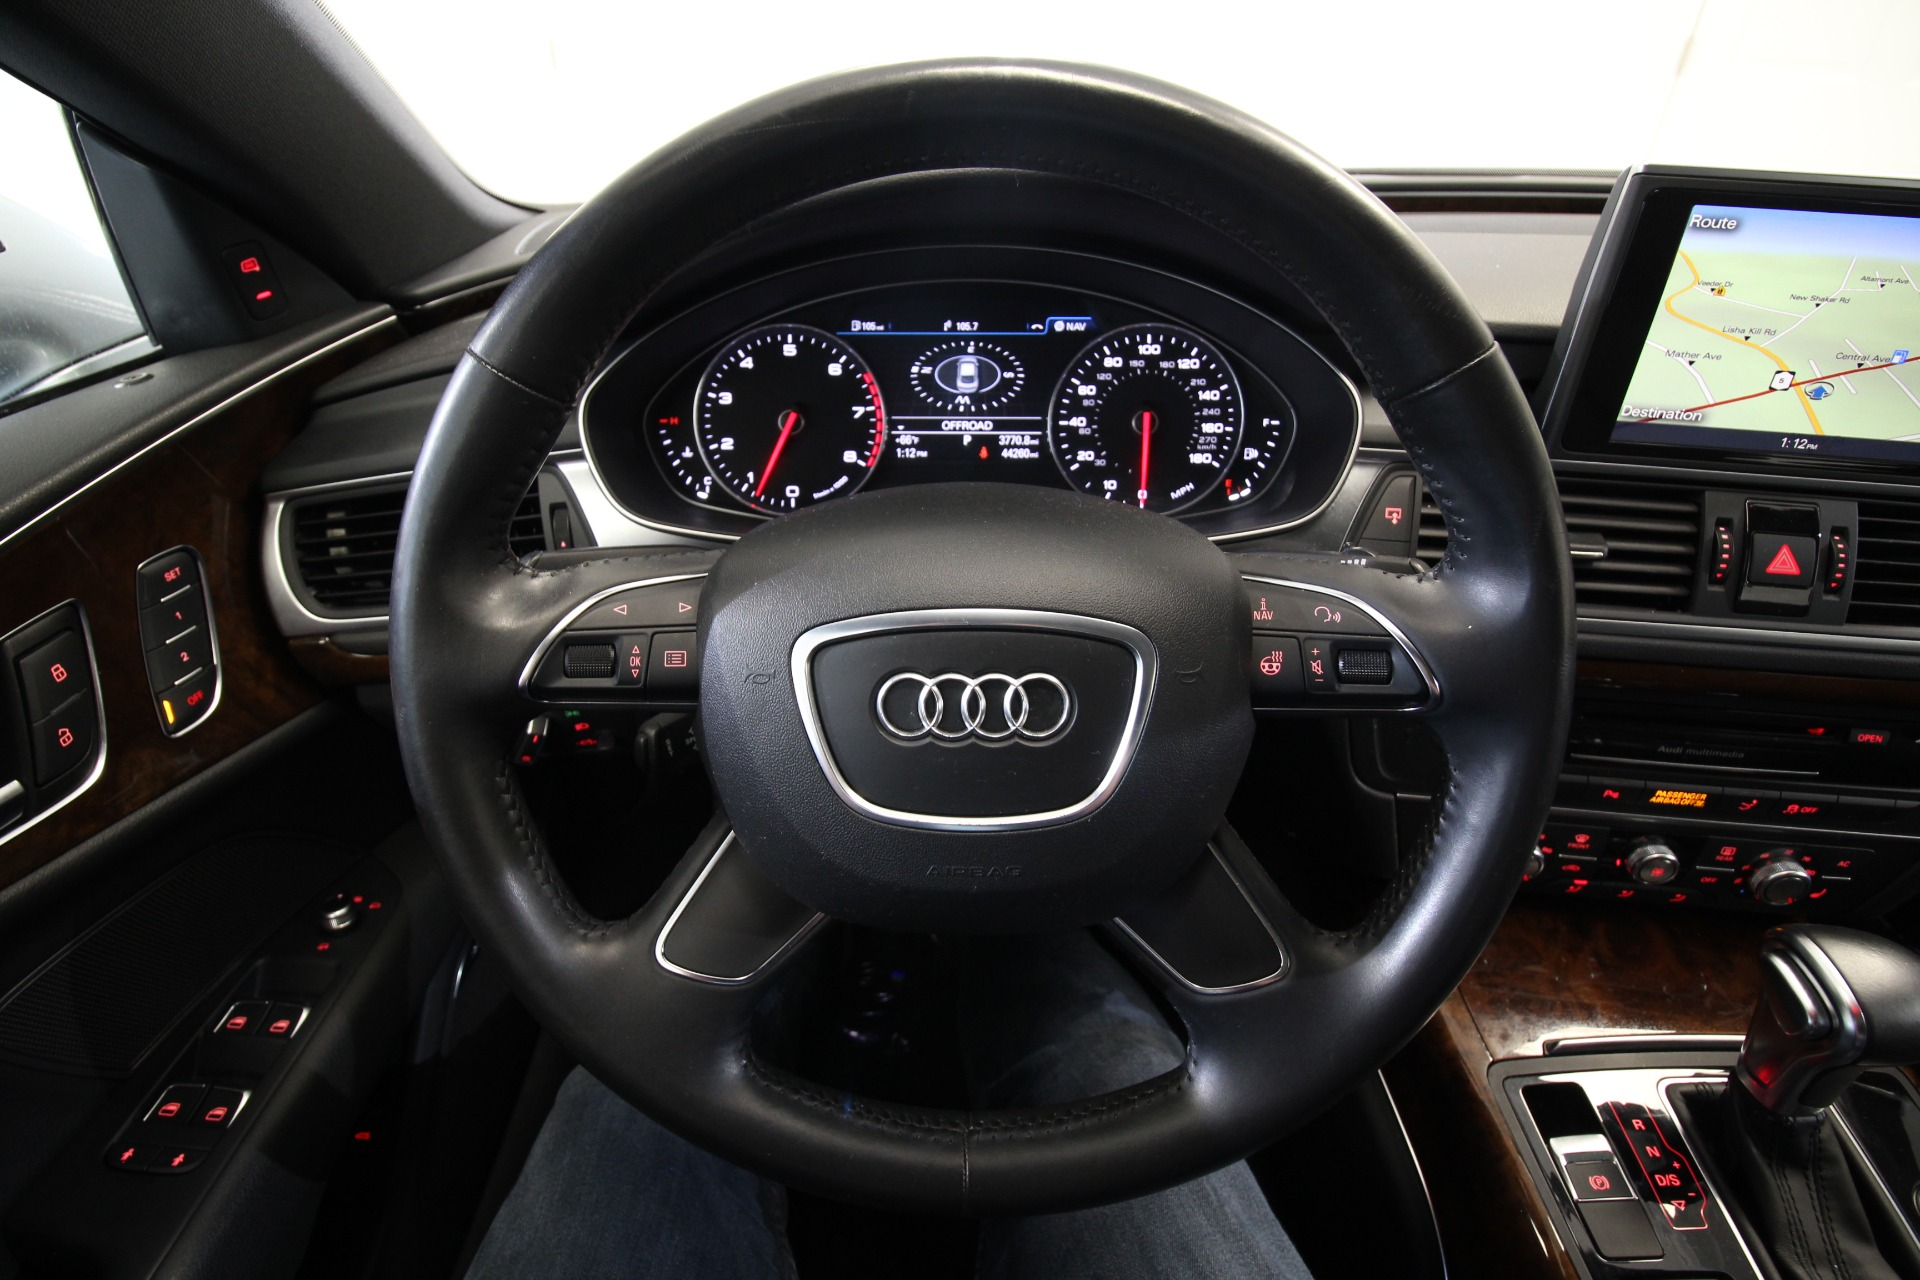 Used 2014 Audi A7 3.0T PREMIUM PLUS QUATTRO LOCAL CAR TRADED IN WITH US   Albany, NY